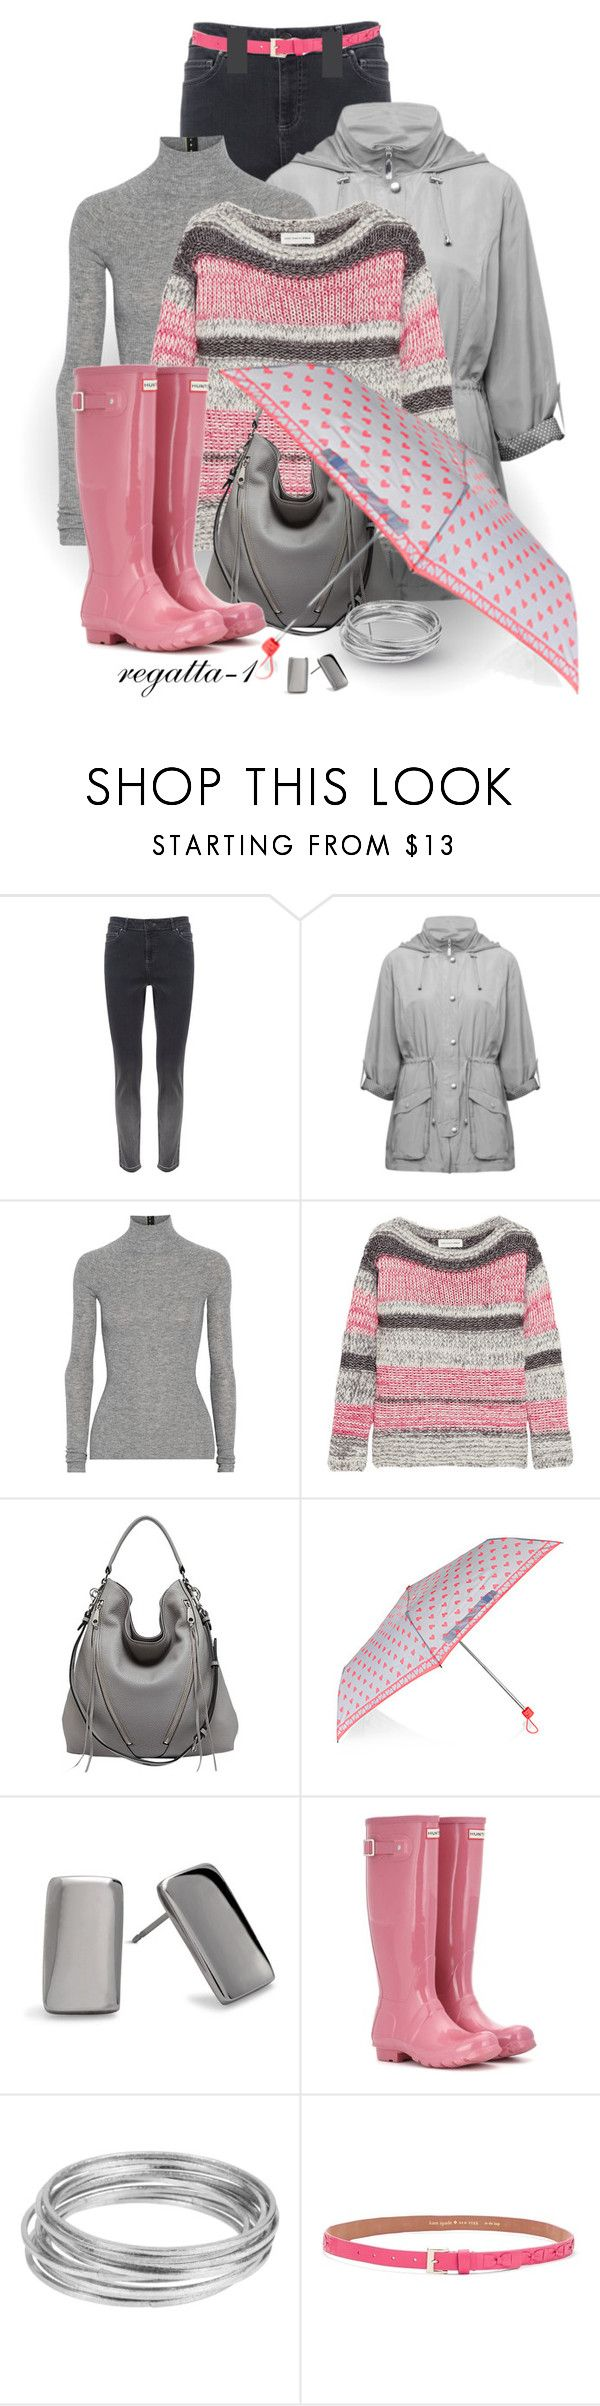 """""""Rainy Day"""" by regatta-1 ❤ liked on Polyvore featuring Mint Velvet, M&Co, T By Alexander Wang, Étoile Isabel Marant, Rebecca Minkoff, Accessorize, Chico's, Hunter, Worthington and Kate Spade"""